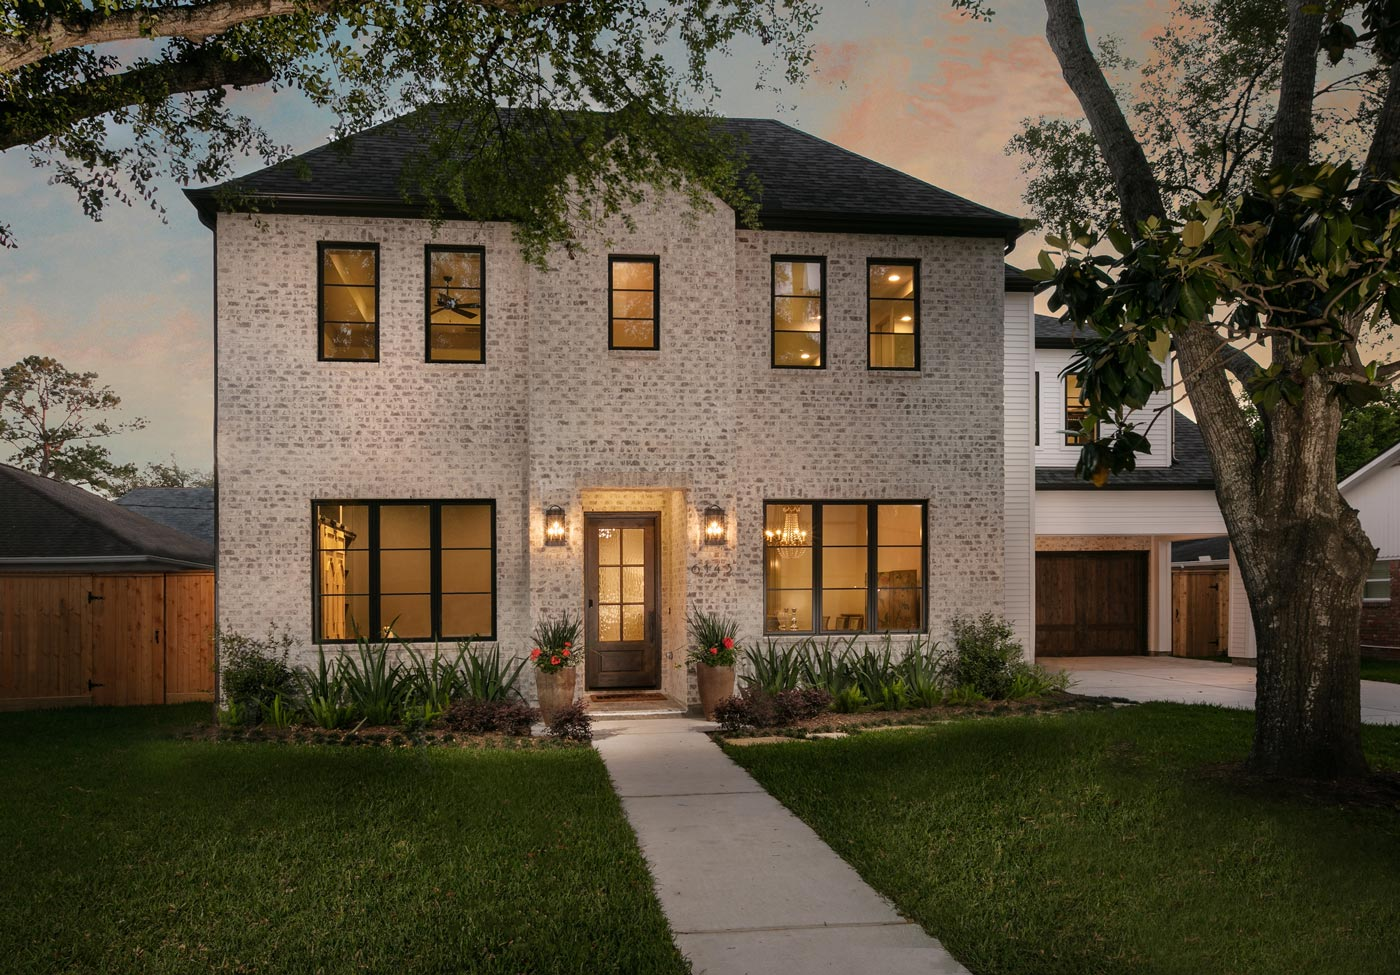 Briargrove Transitional - Front - BuildFBG